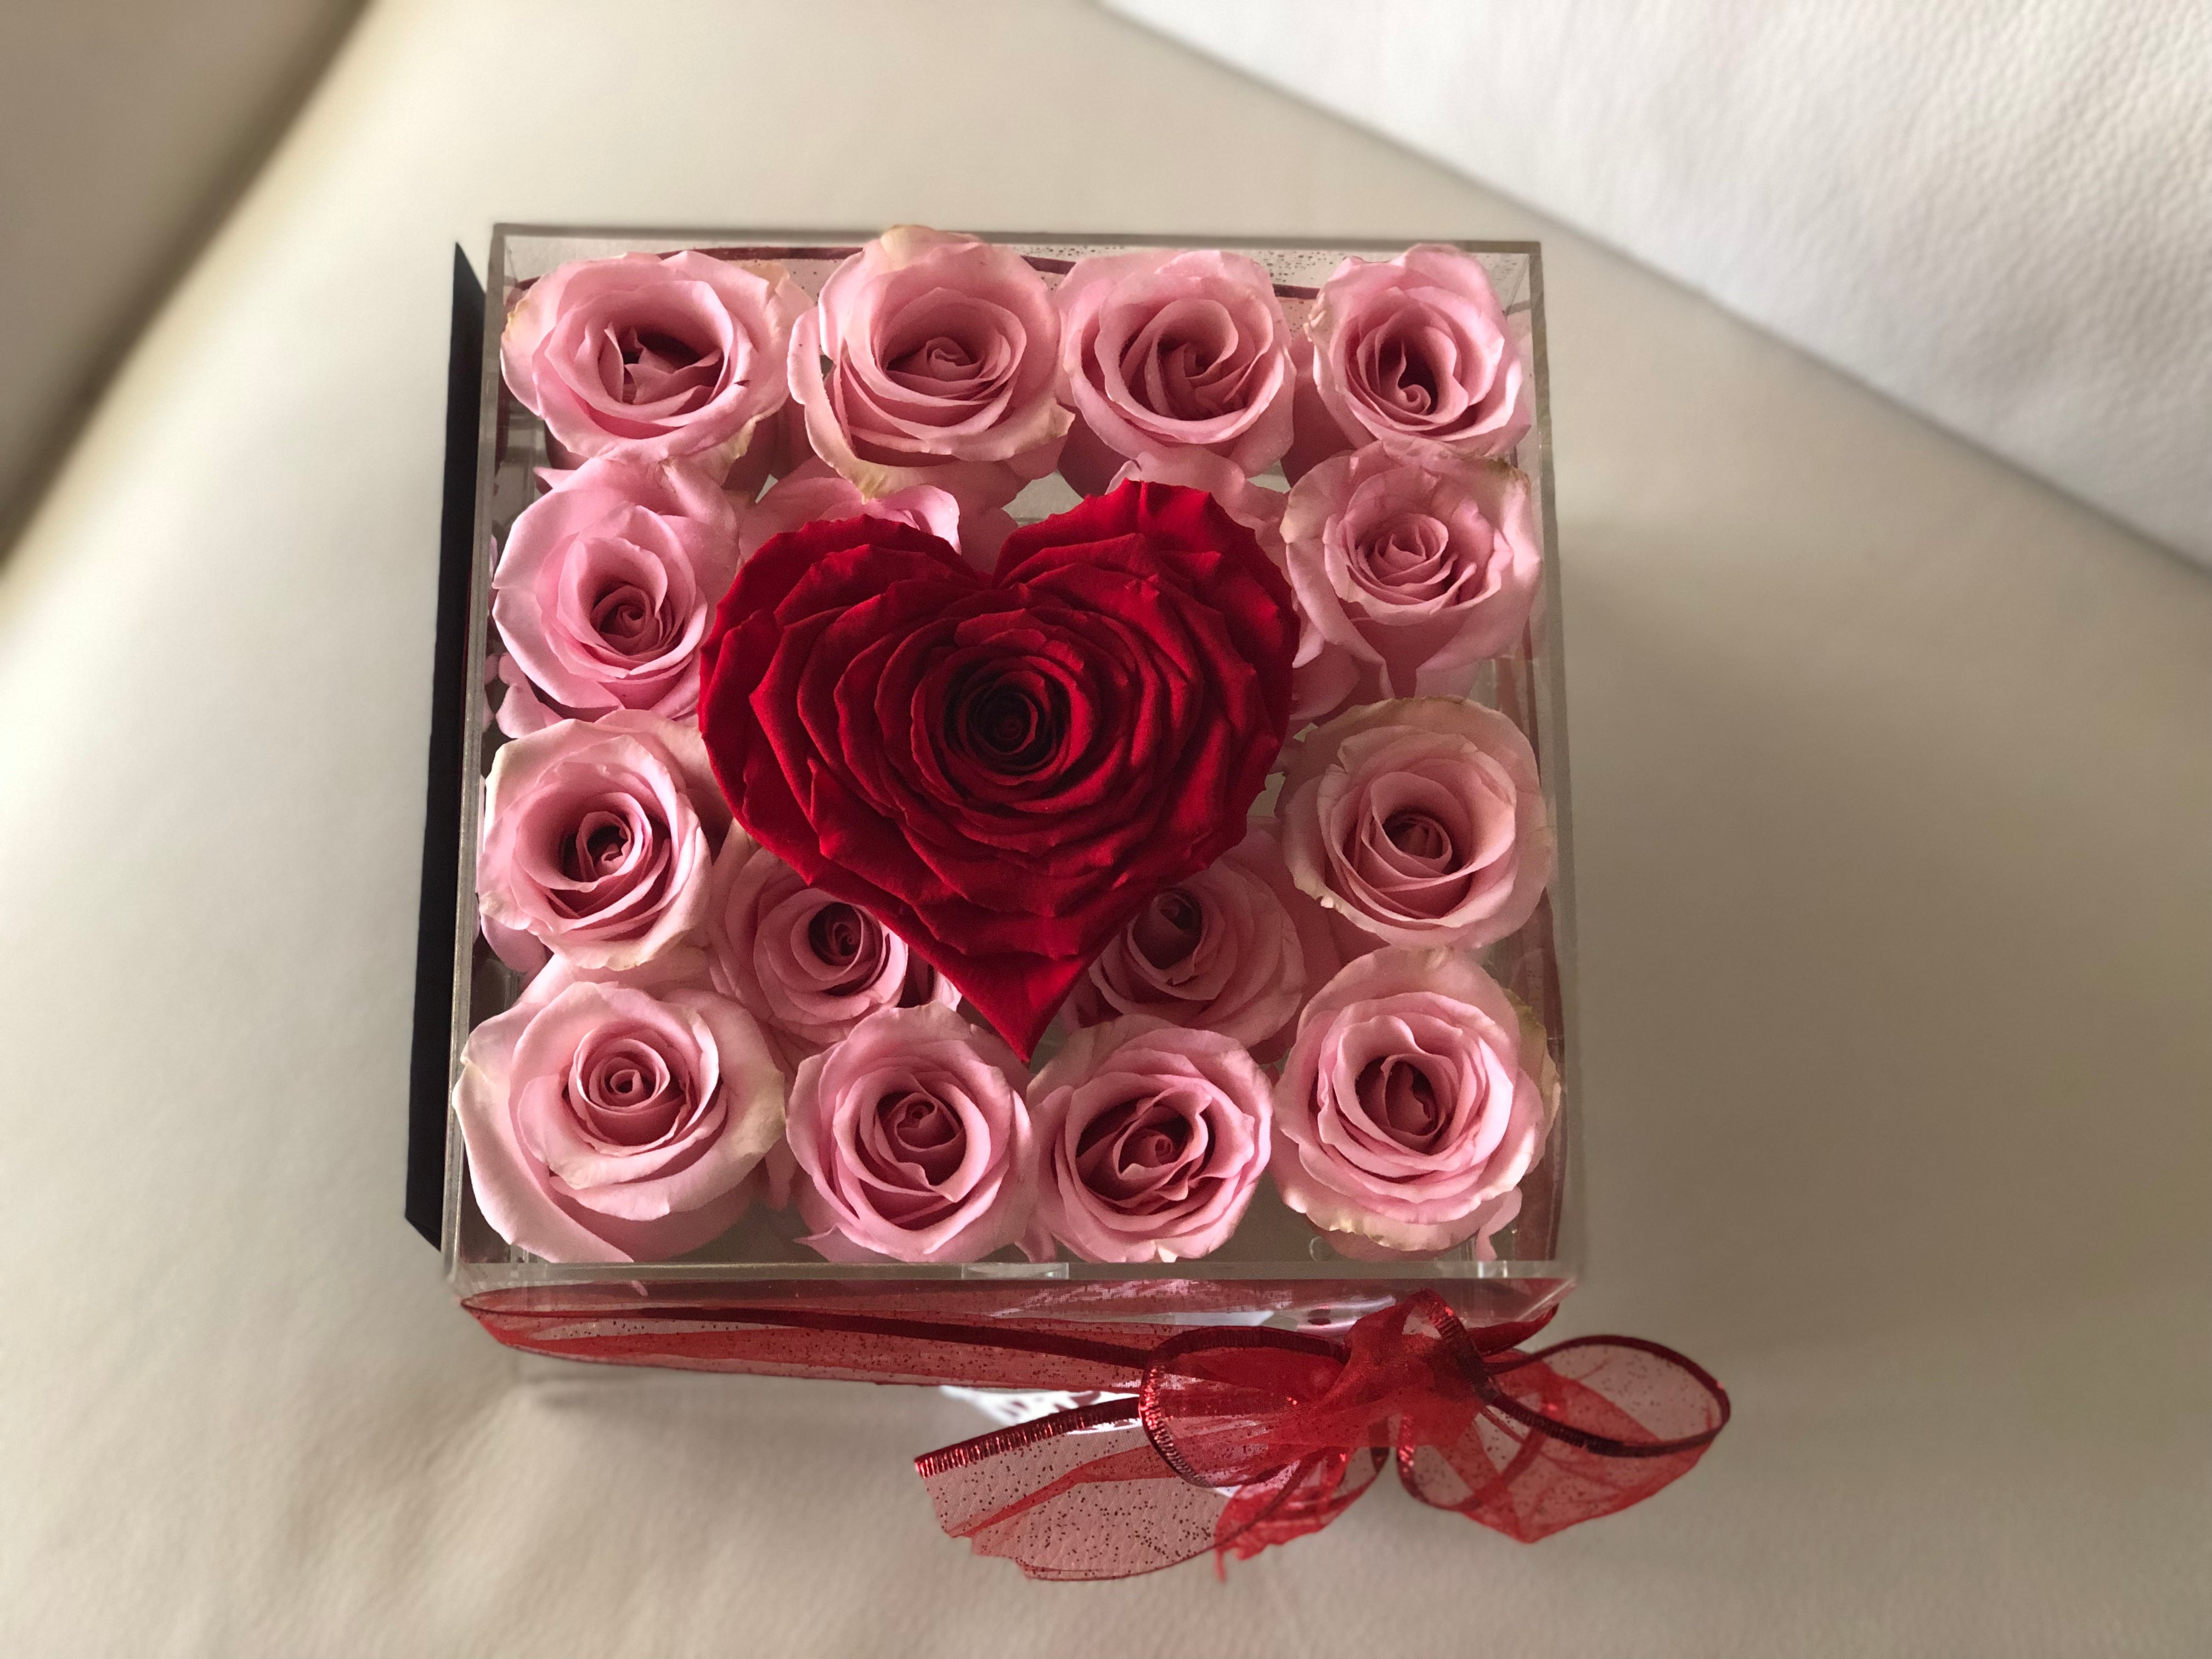 Modern Rose Box with preserved roses that last for years with pink roses and accented with a red petal heart and jewelry drawer